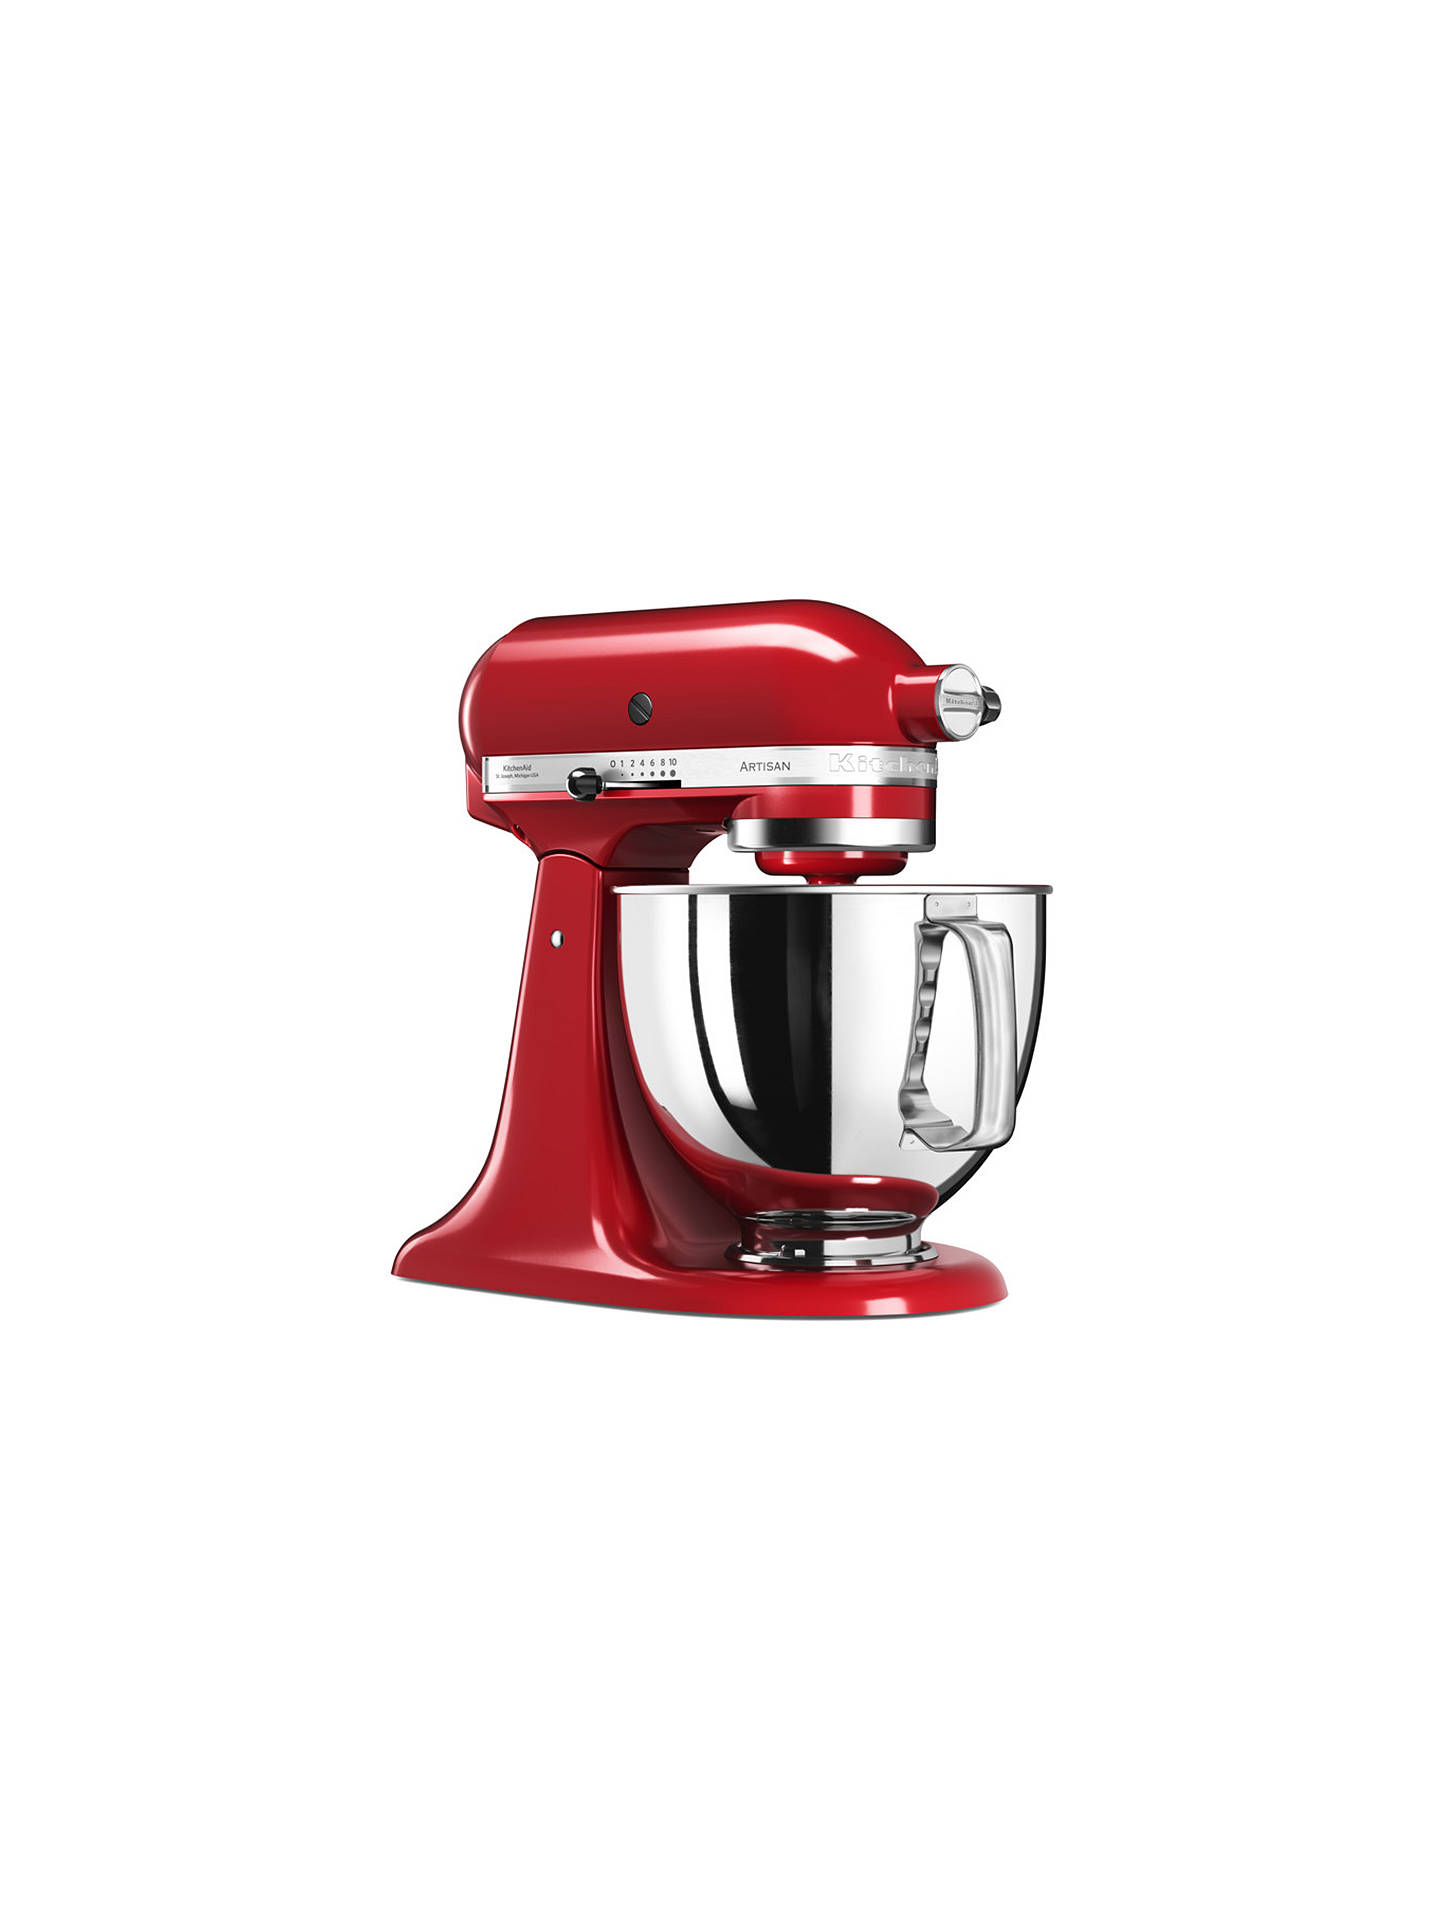 Buy KitchenAid 125 Artisan 4.8L Stand Mixer, Empire Red Online at johnlewis.com